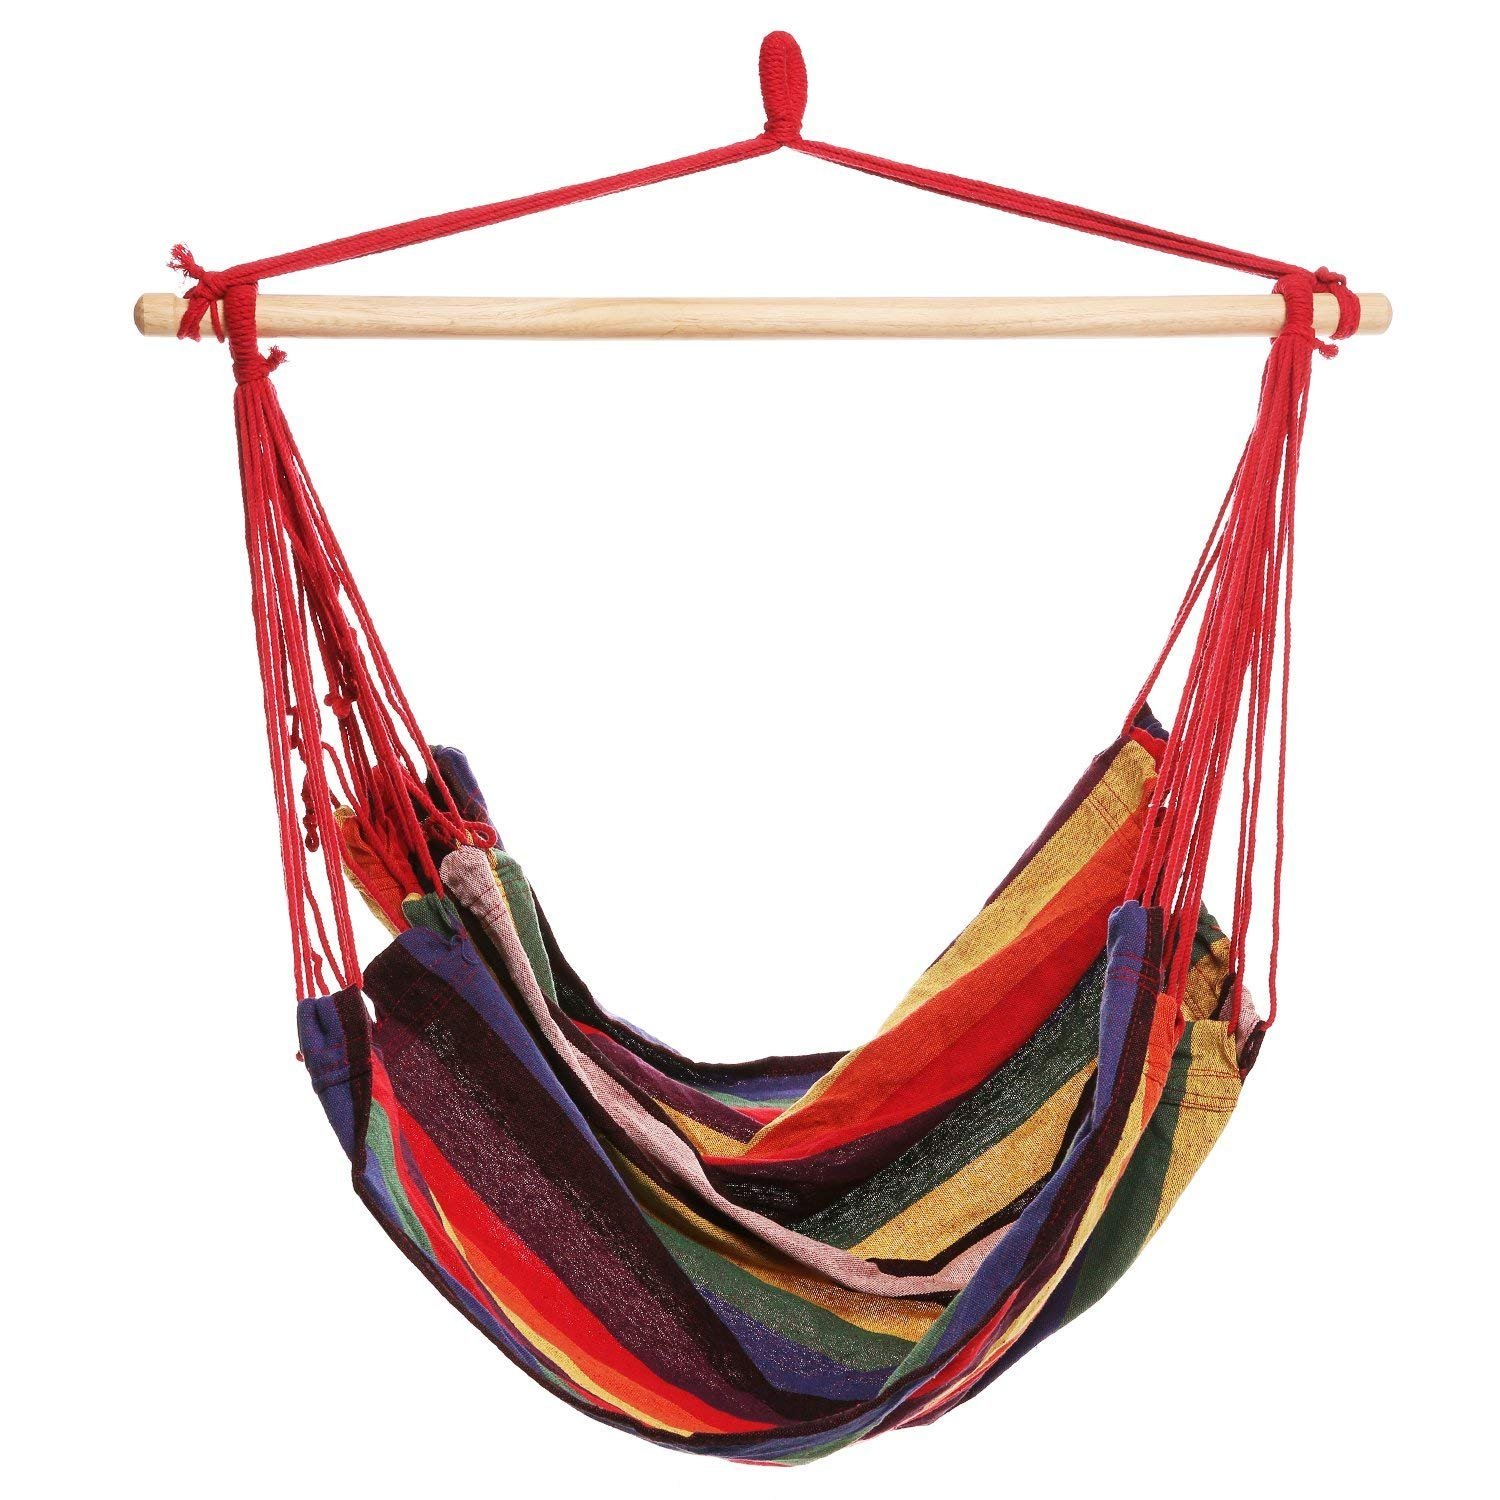 Syber Monday Deal Week Durable 265 lb Hanging Hammock Chair Colorful Hanging Swing Set for Indoor and Outdoor US Stock Rainbow